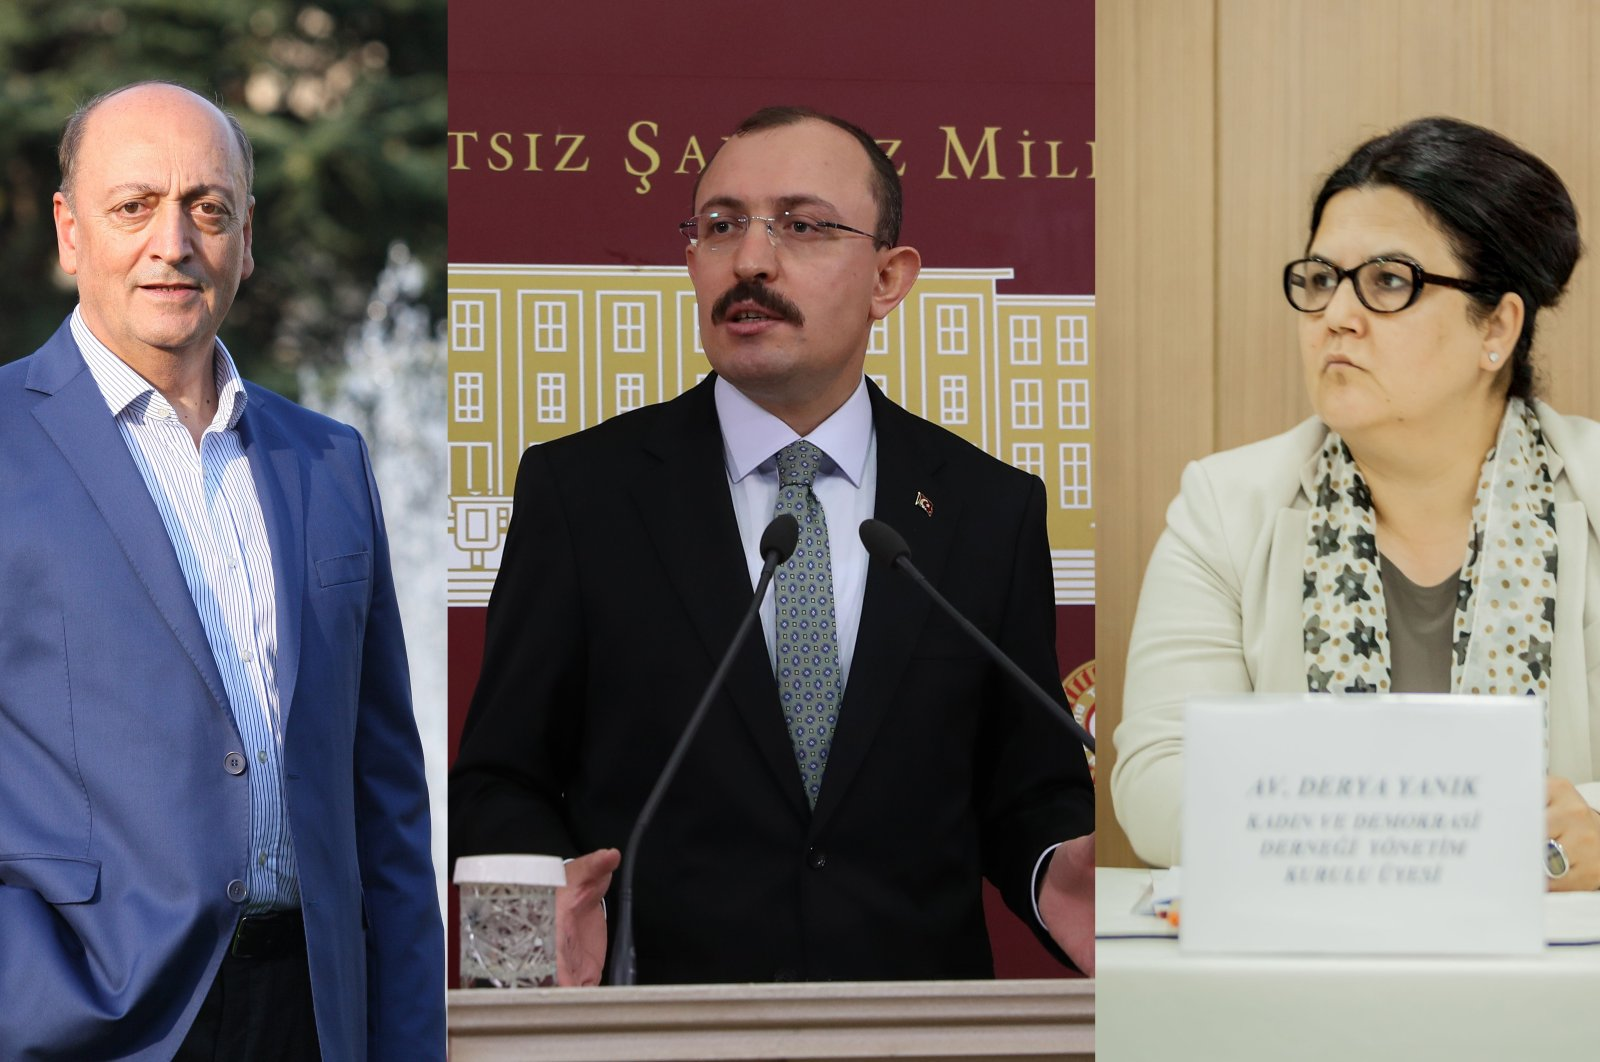 New Minister of Social Security Vedat Bilgin (L), new Trade Minister Mehmet Muş (C) and new Minister of Family and Social Services Derya Yanık are seen in this combination photo.